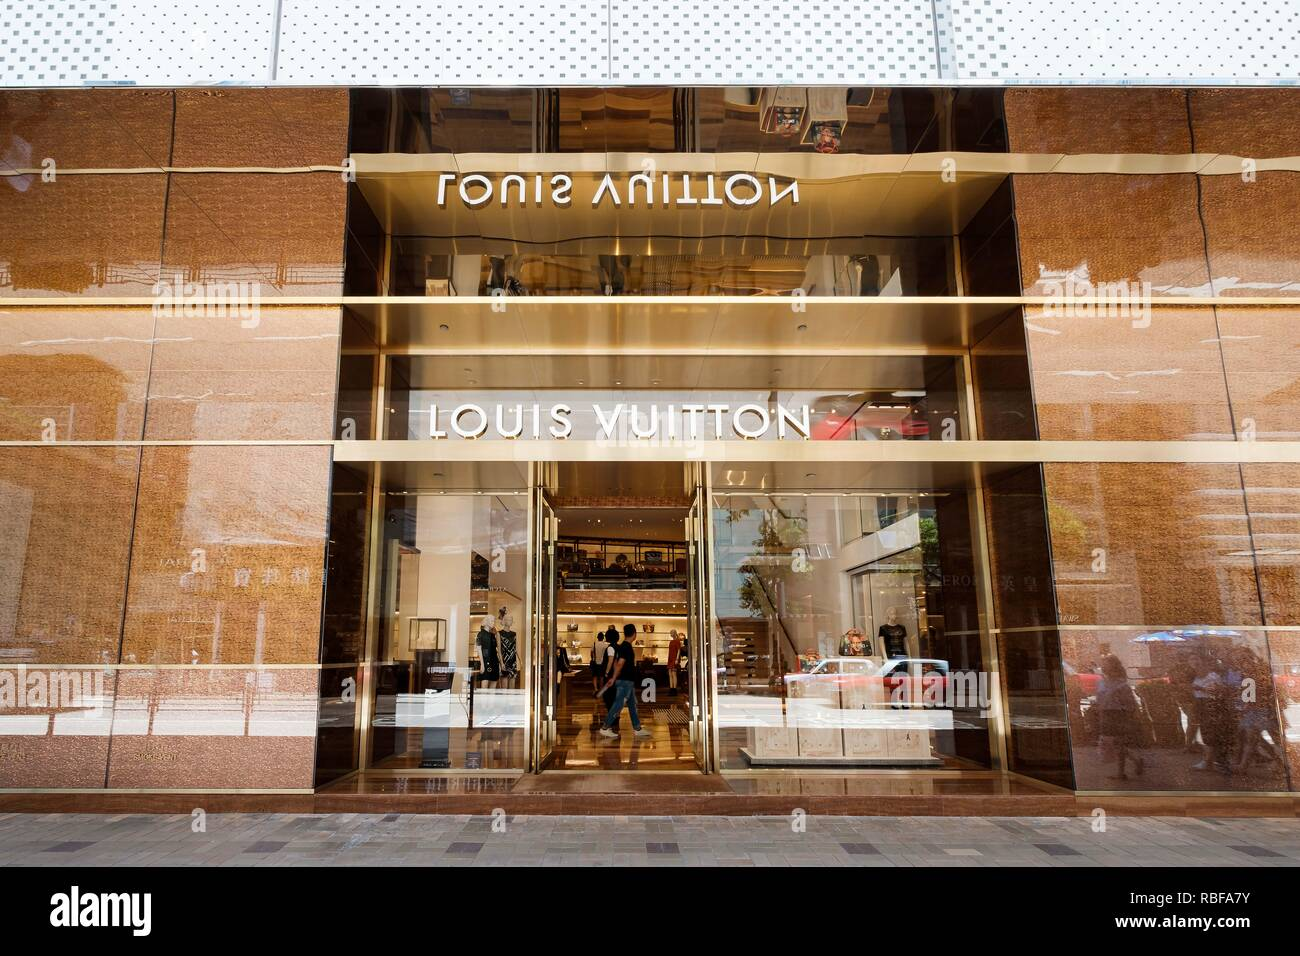 8413b65e3ef Lv Store Stock Photos & Lv Store Stock Images - Alamy